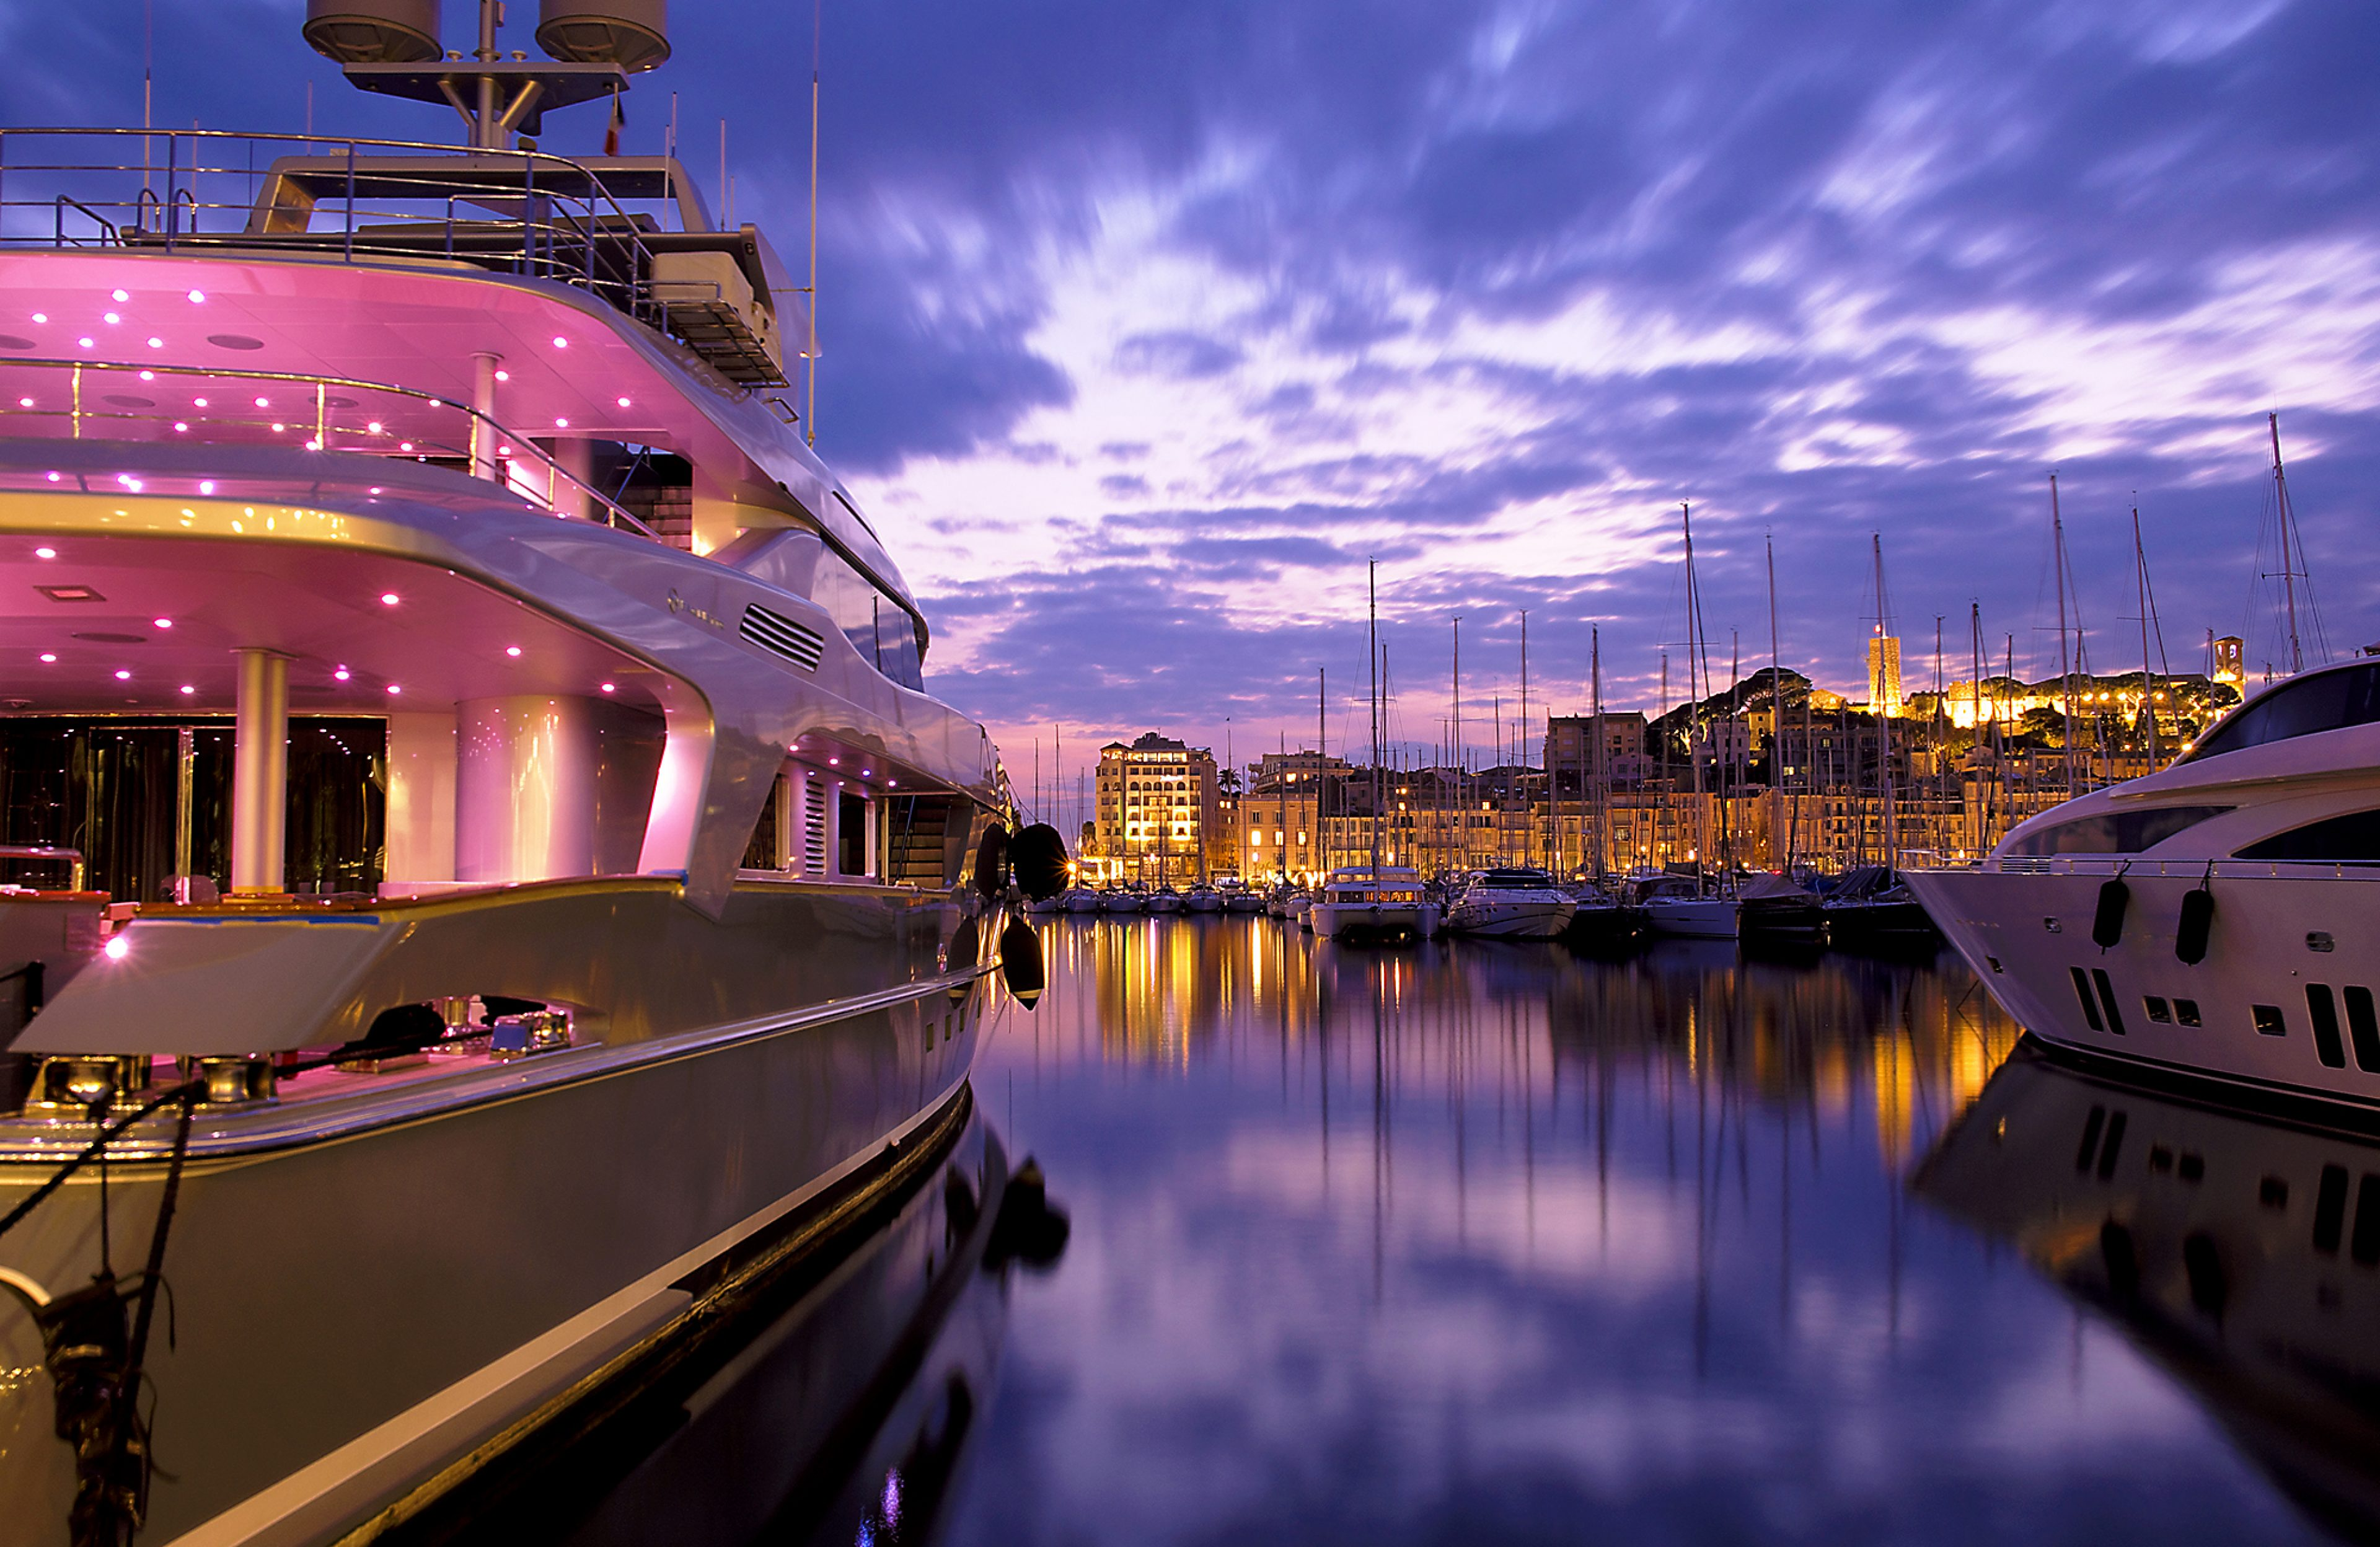 Boat in Cannes harbour by night